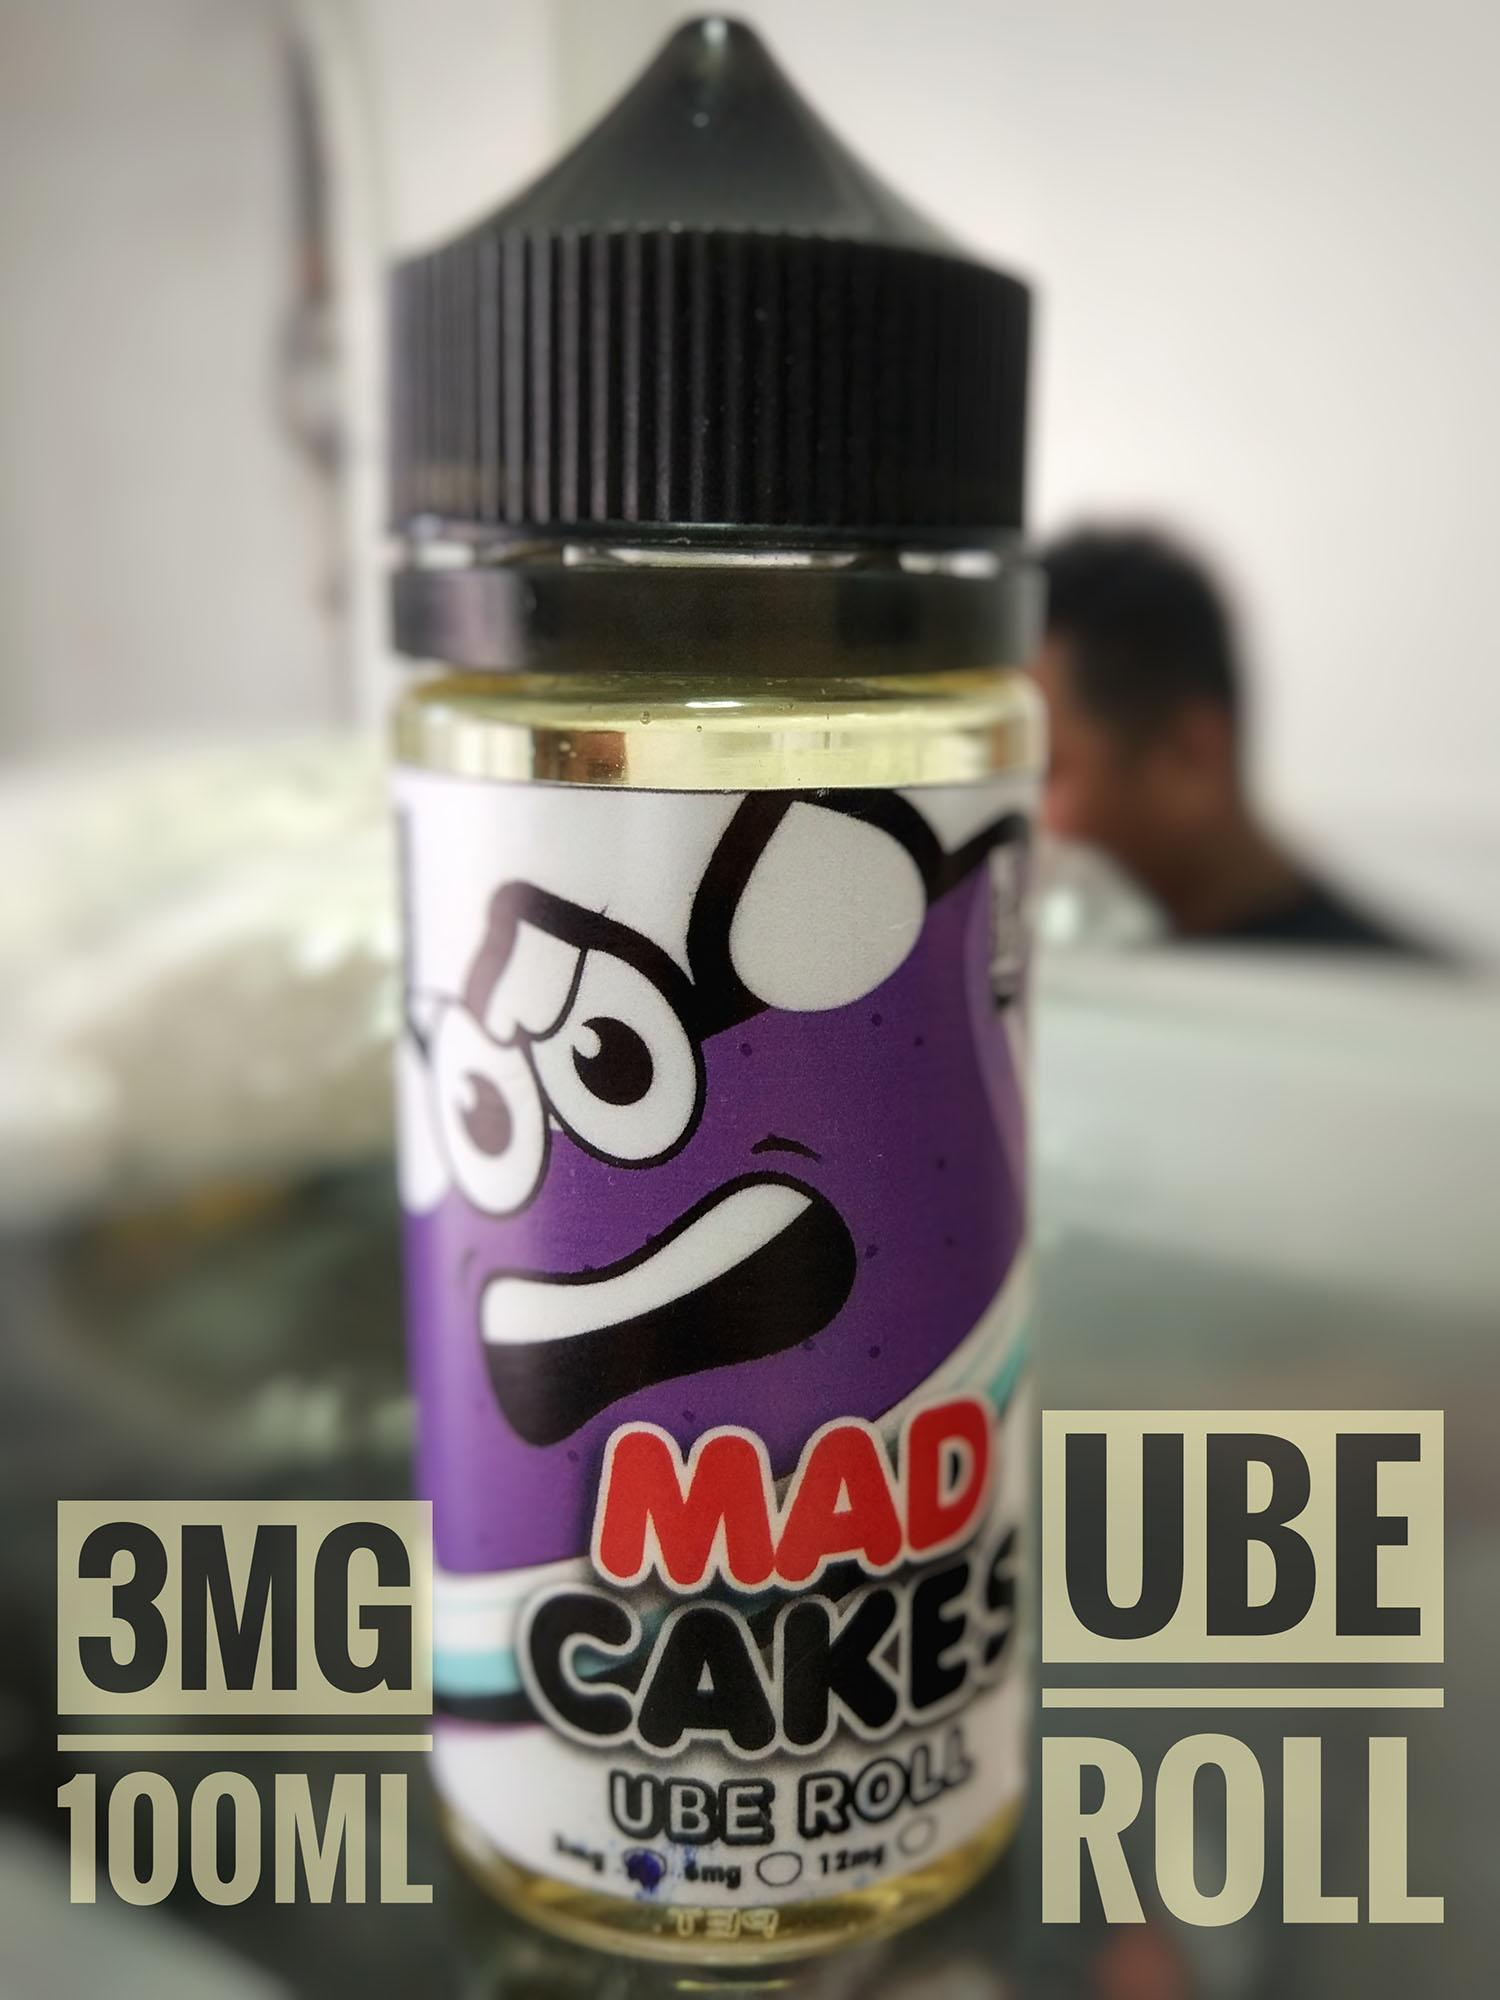 Mad Cakes [ Ube Roll / Strawberry Cheesecake ] 100ML 3MG E Juice E Liquid Vape Juice